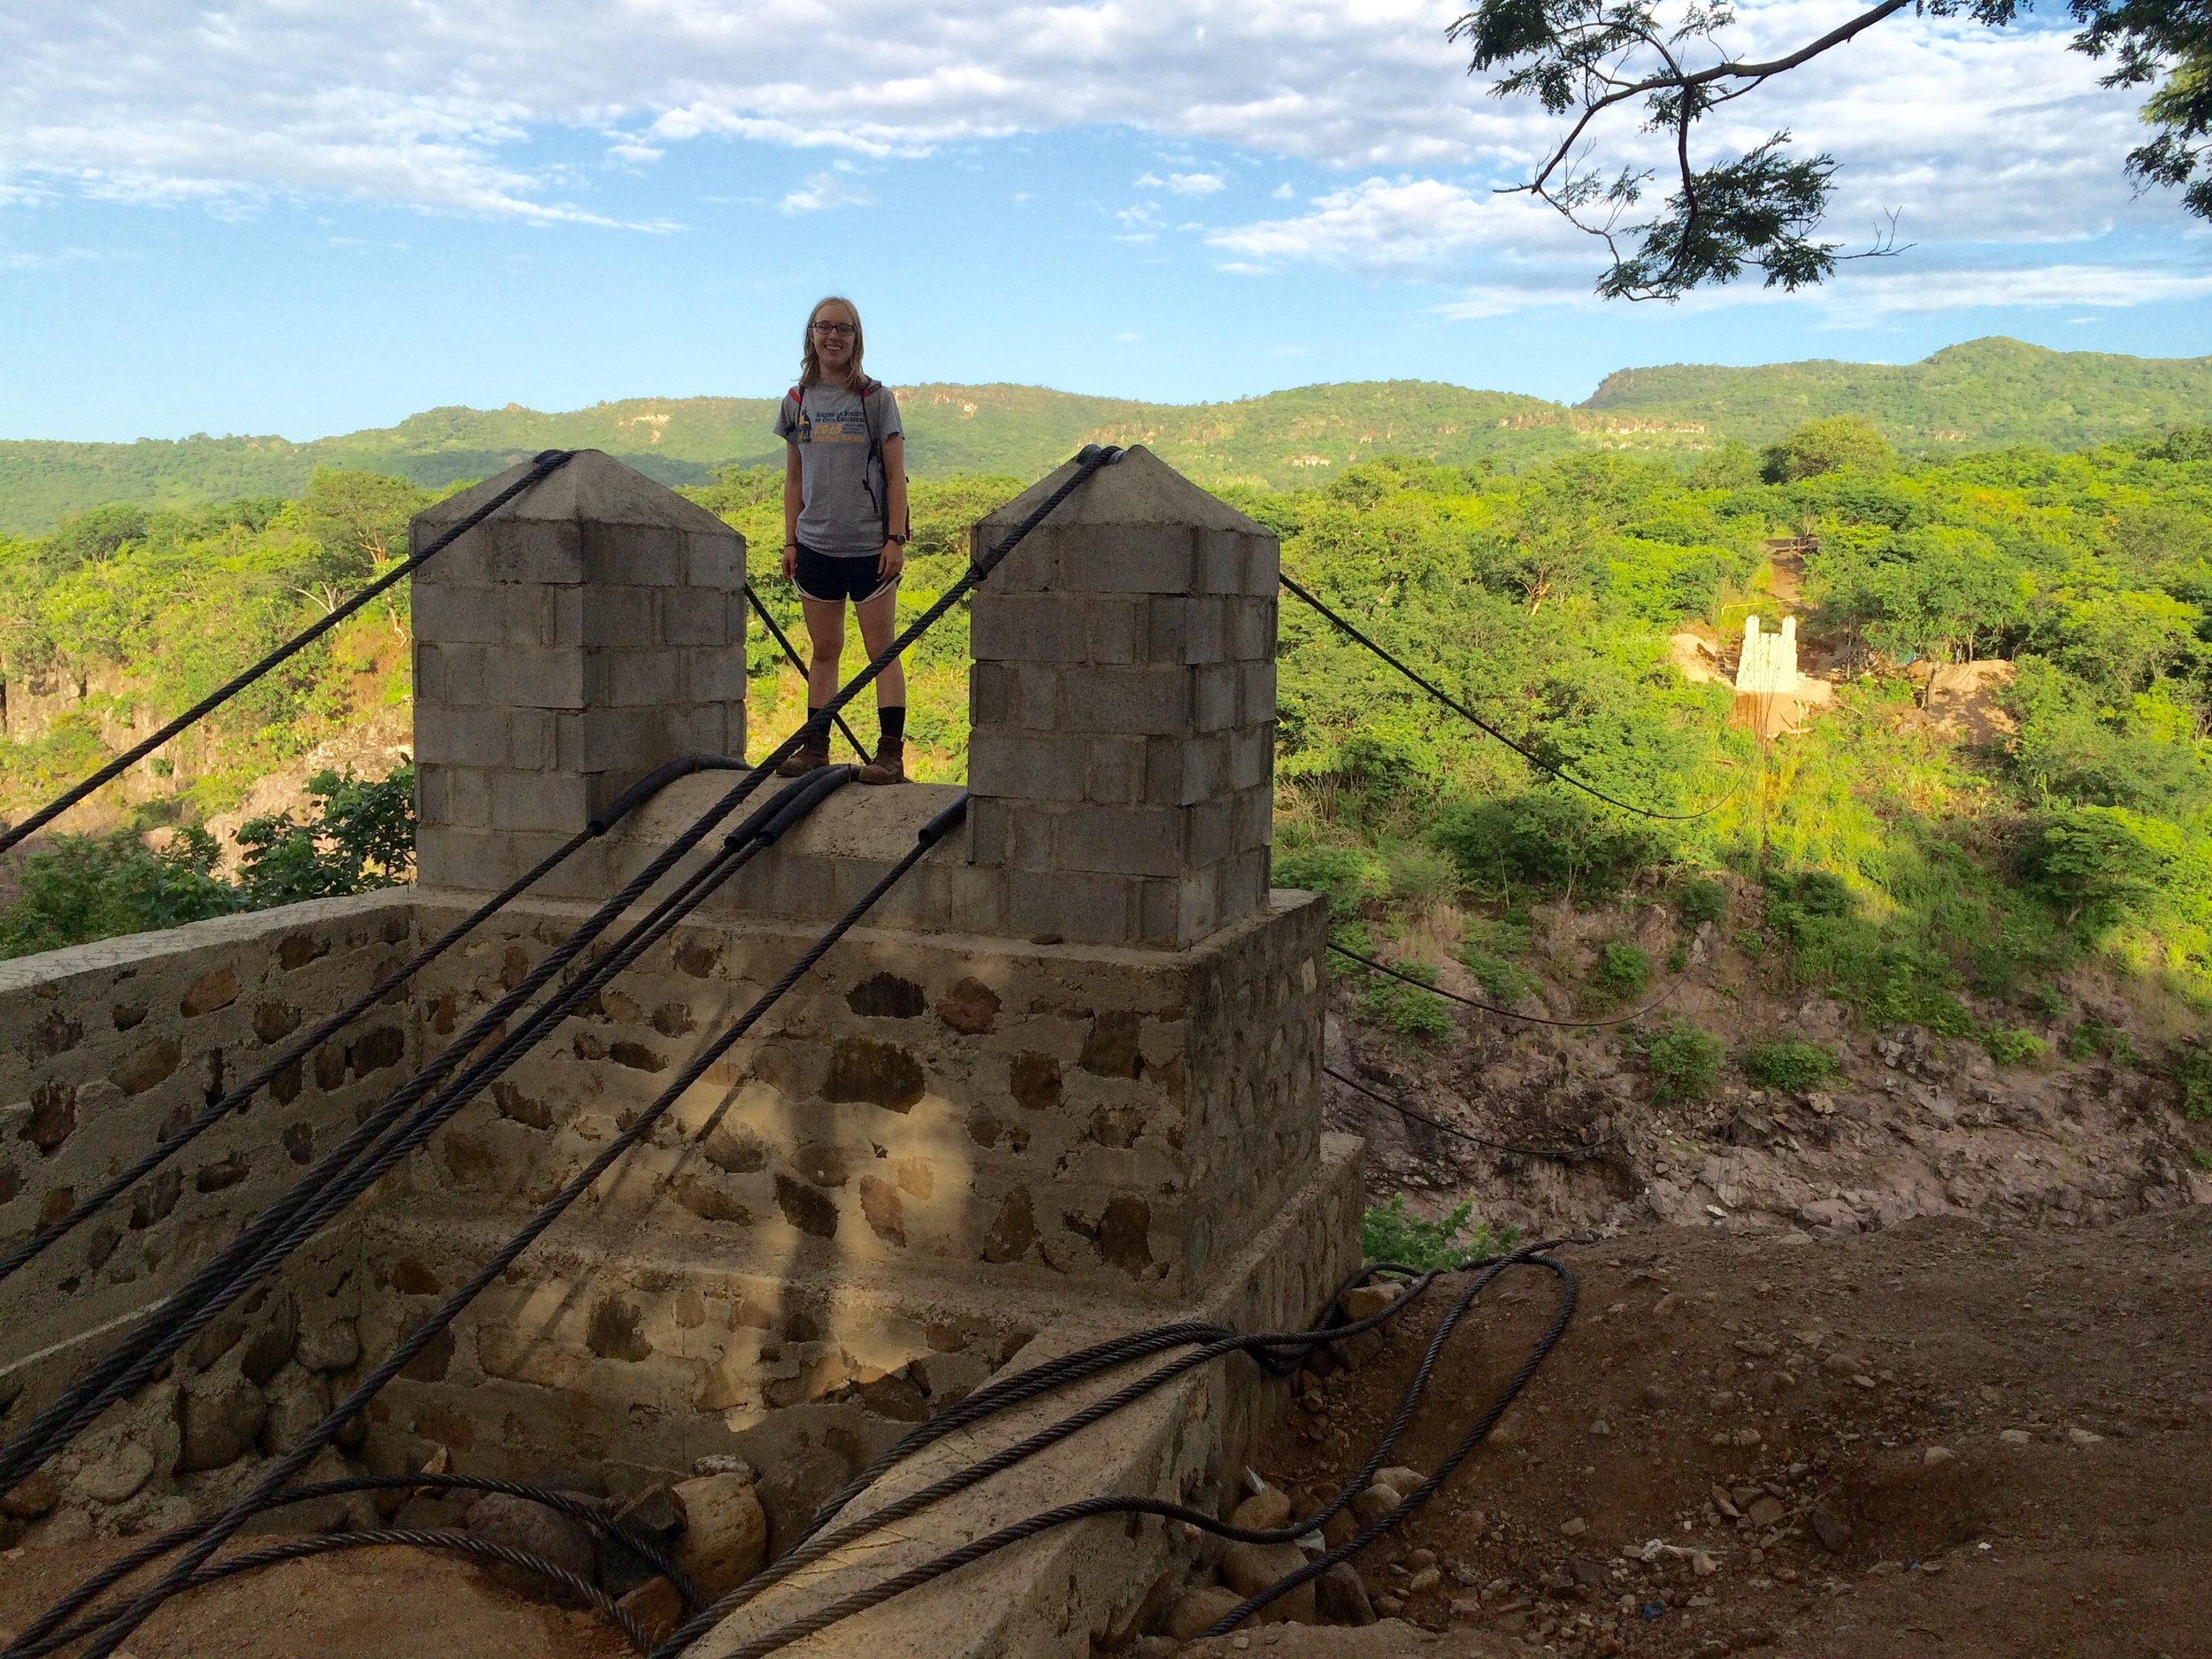 Savannah Washlesky - Savannah built a bridge in Nicaragua with the University of Notre Dame Team and is now a structural engineering master student at University of Virginia.